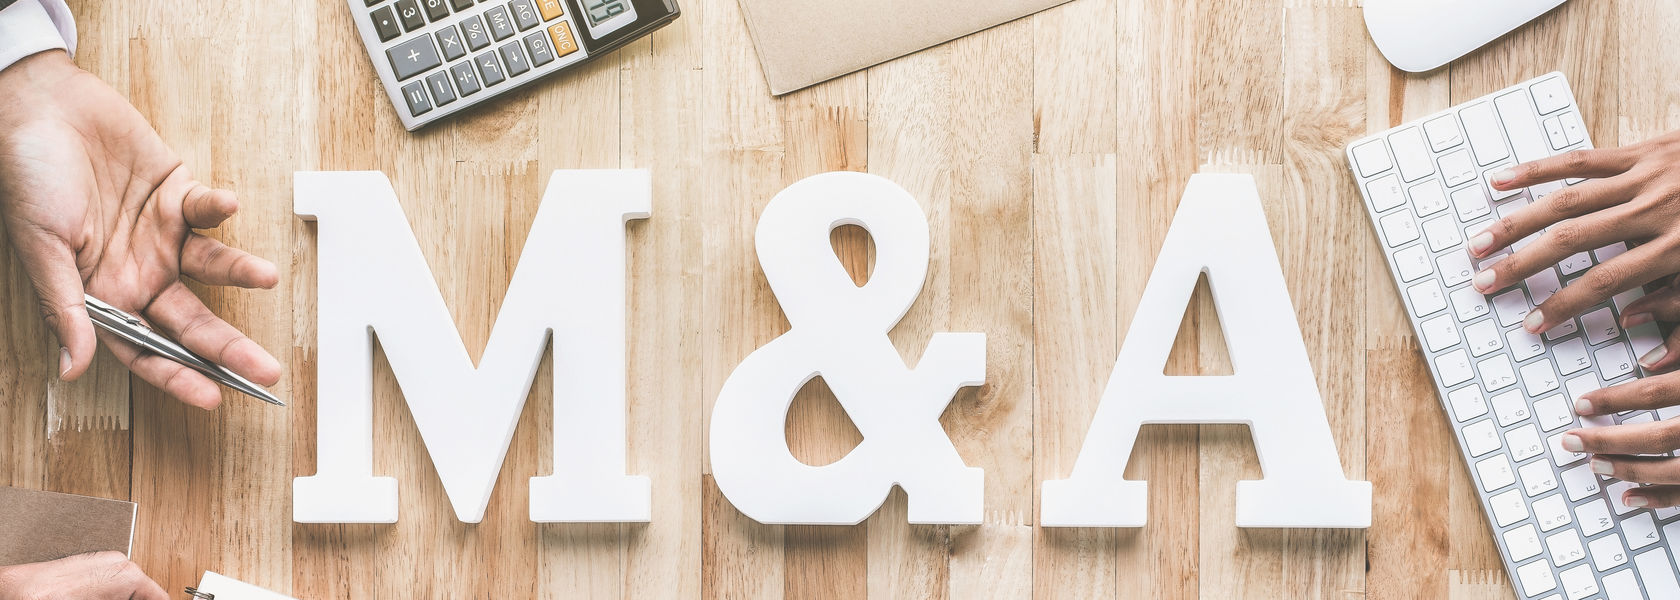 Financial Services Sector M&A Activity Trends 2020 vs 2019